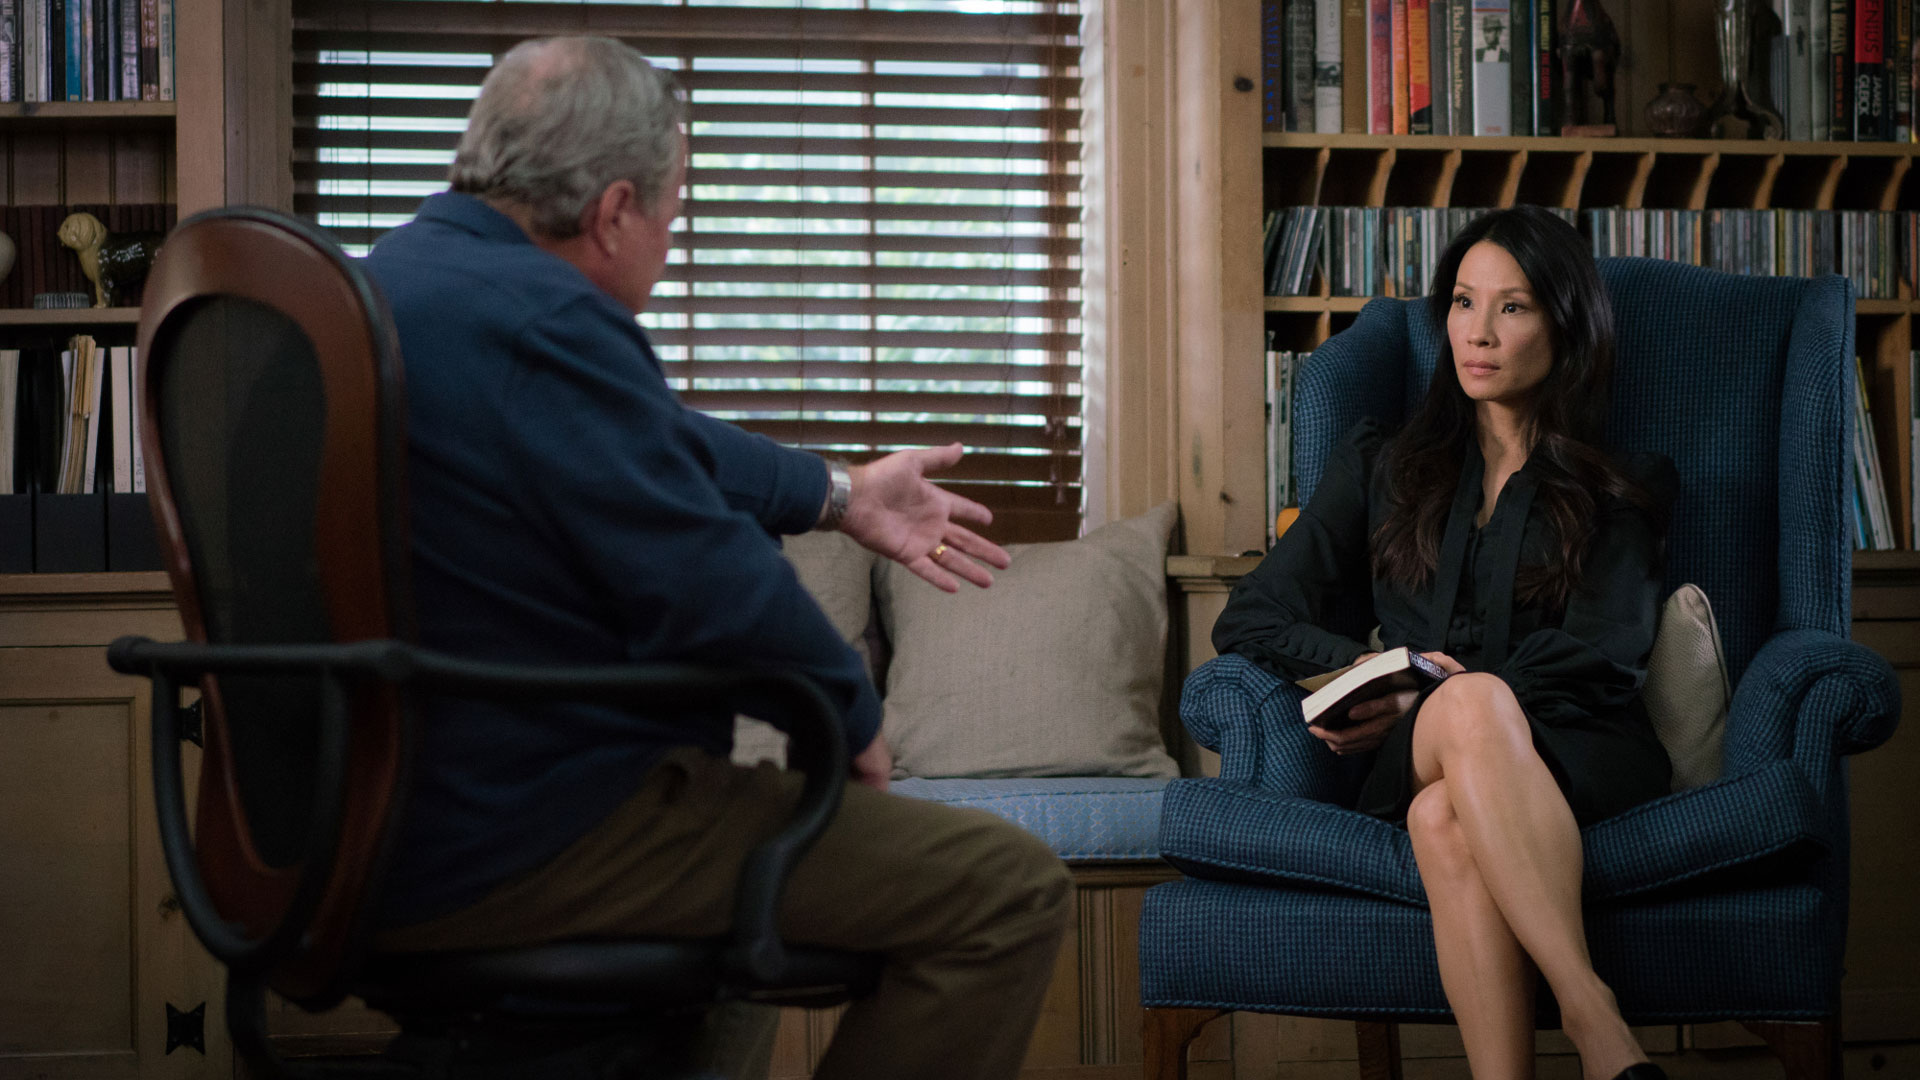 John Heard as Watson's stepfather and Lucy Liu as Dr. Joan Watson